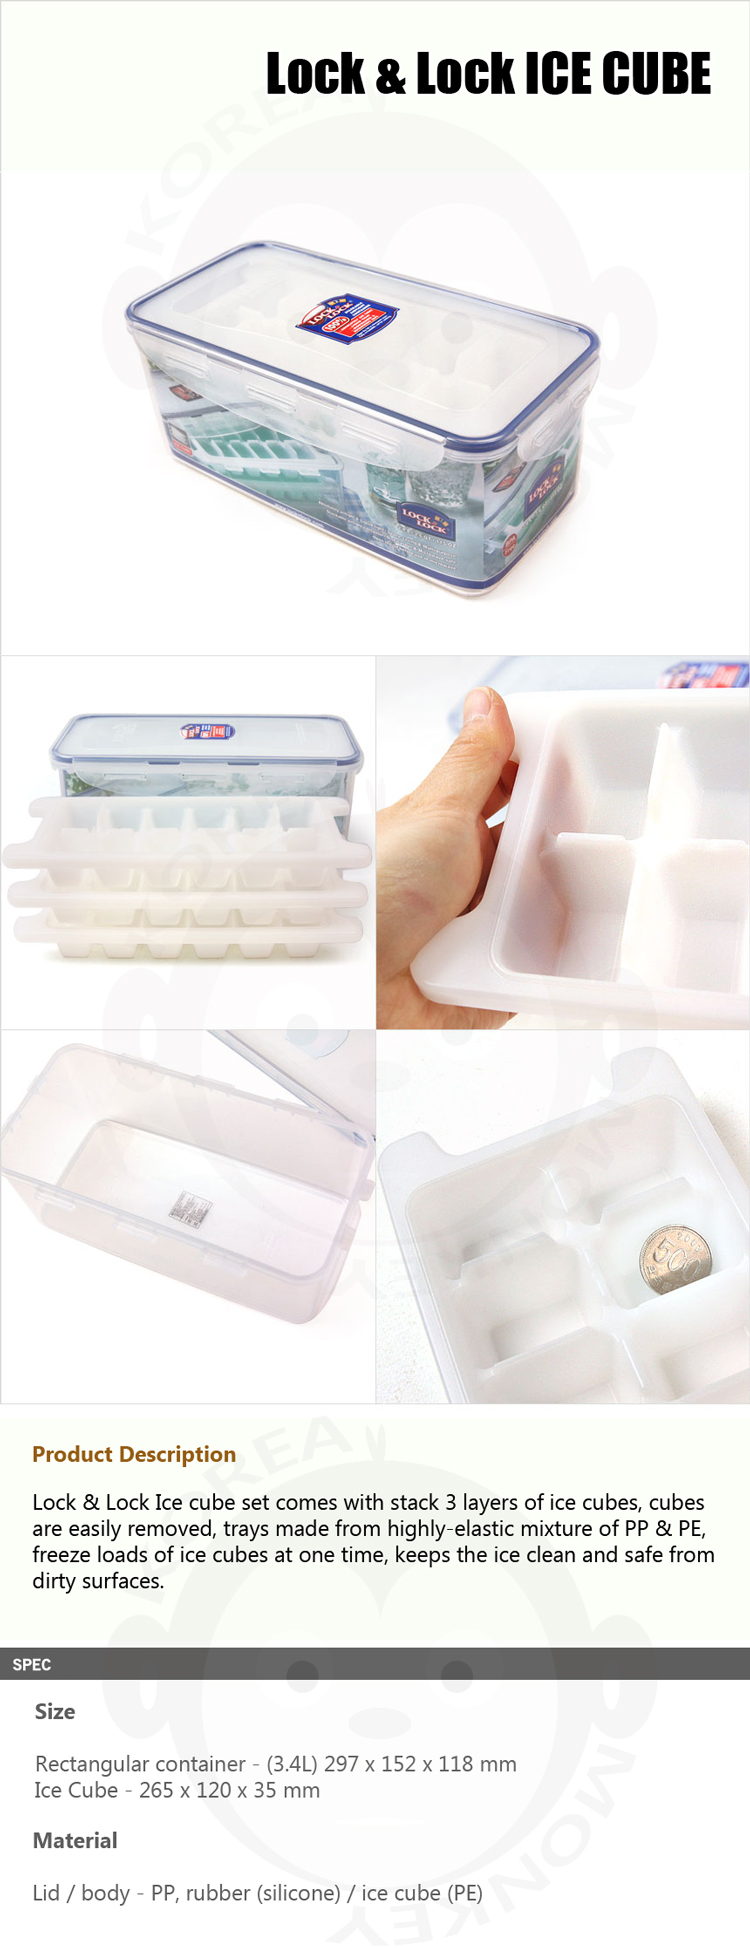 Locklock Food Container Hpl846 Rectangular Tall 3 4ltray Daftar Hpl808h 12l Lock Containers And Airtight In